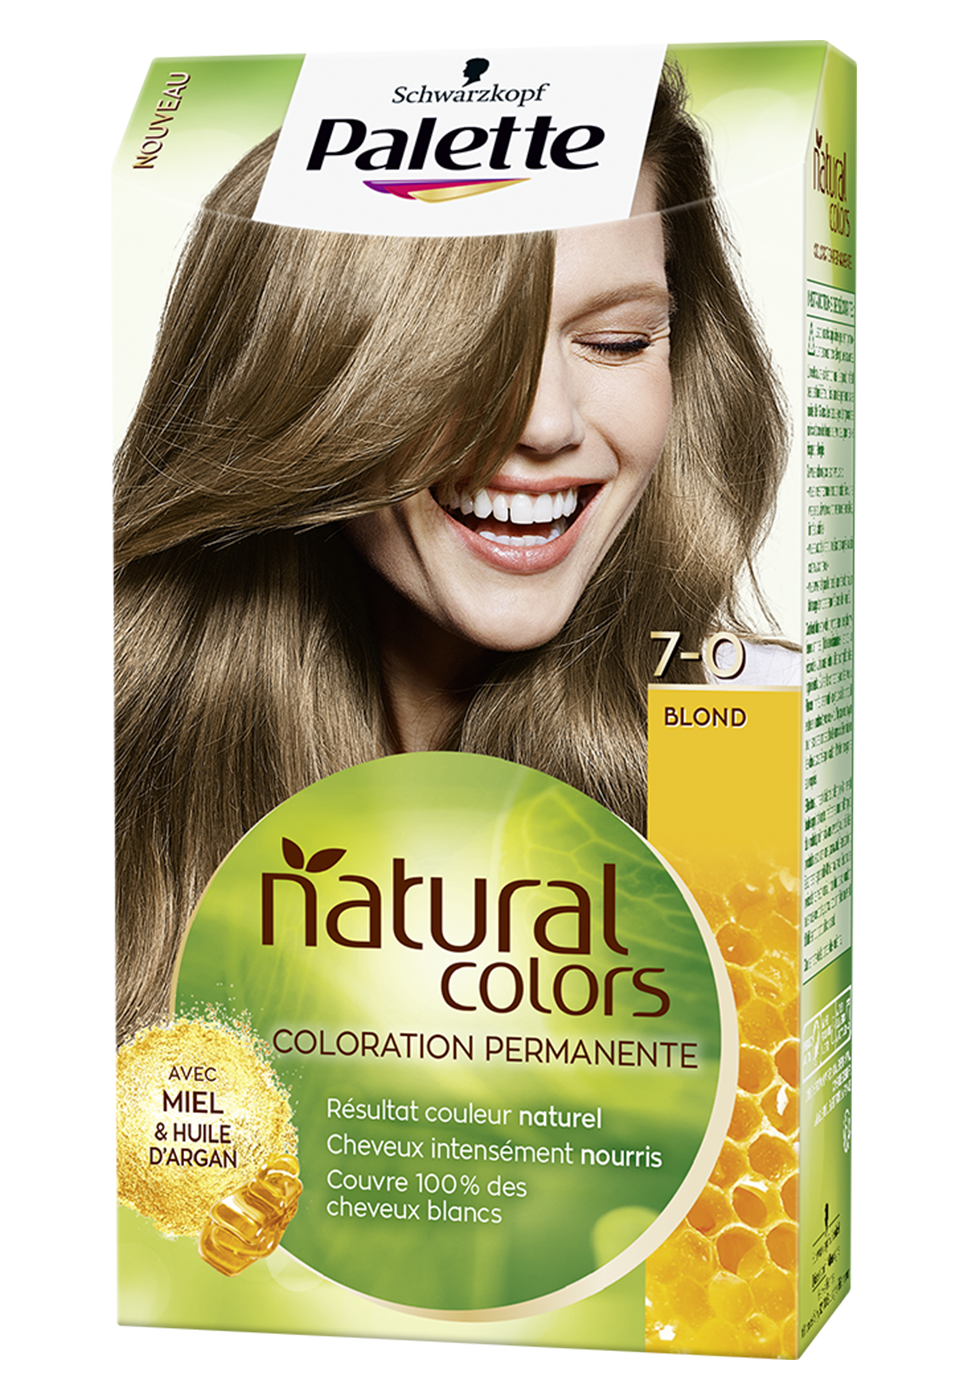 palette-natural-colors-7-0-blond